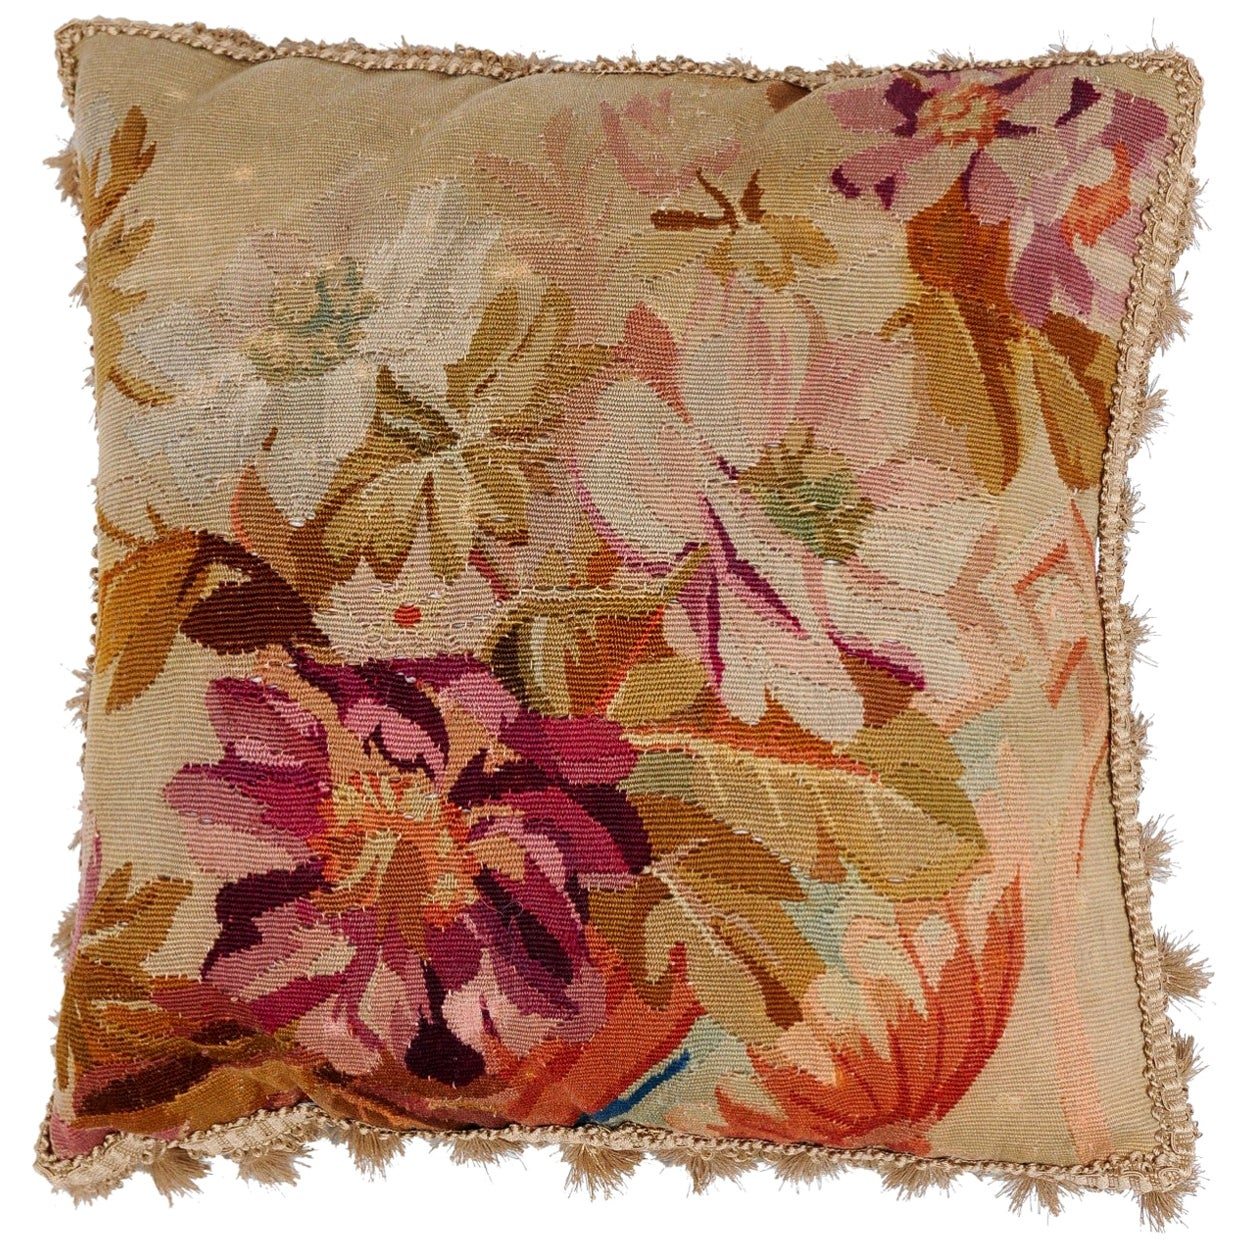 19th Century French Aubusson Woven Tapestry Pillow with Floral Décor and Tassels